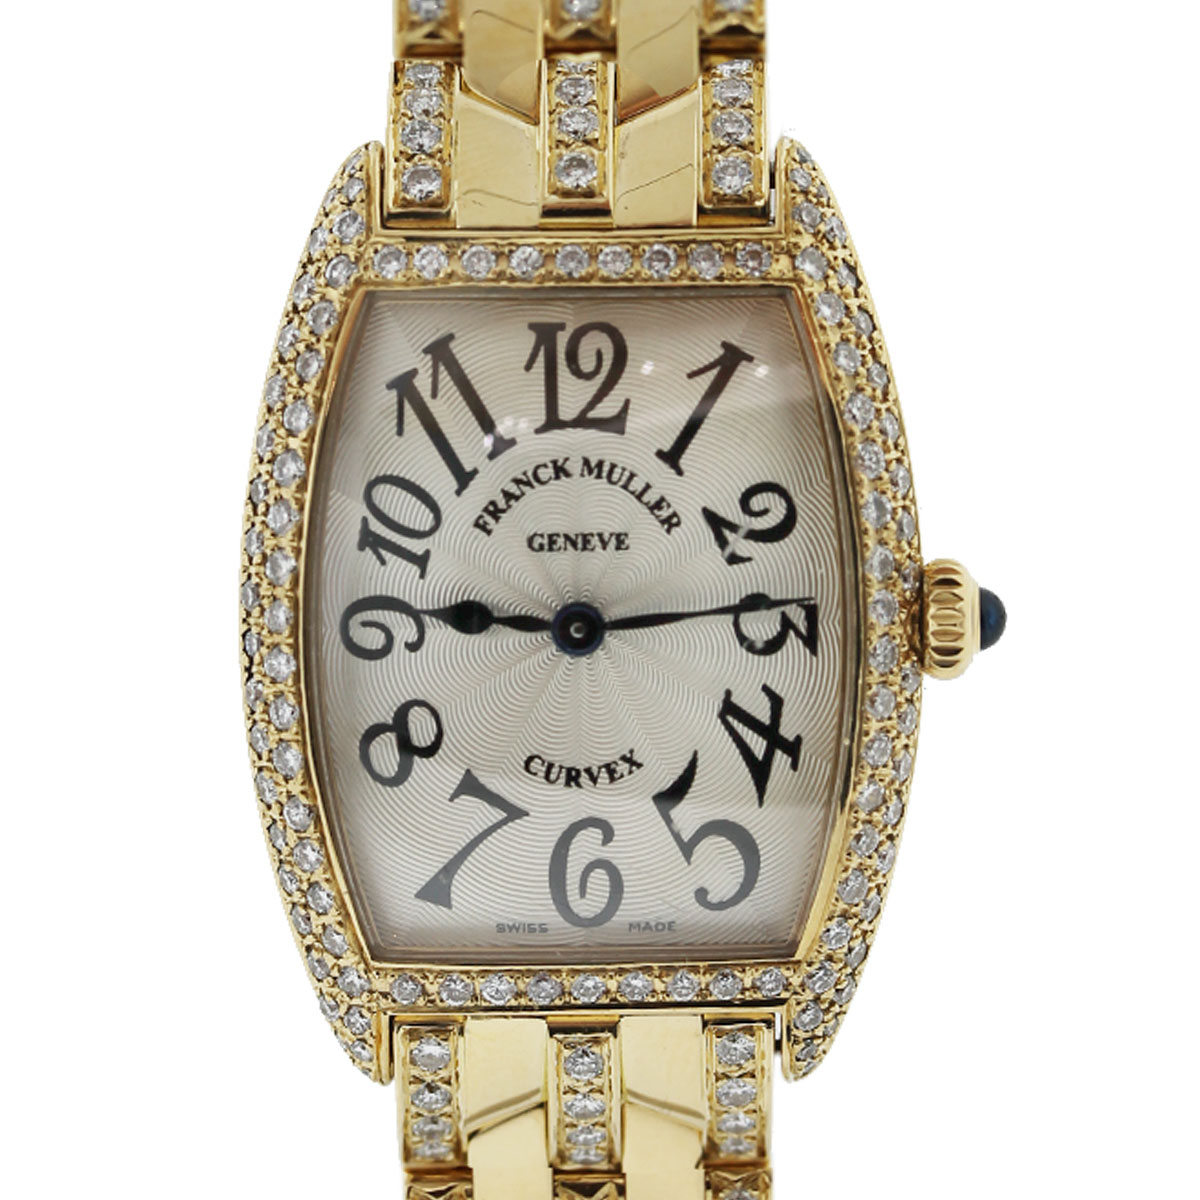 Franck muller curvex aftermarket all diamond no 521 ladies watch for Franck muller watches